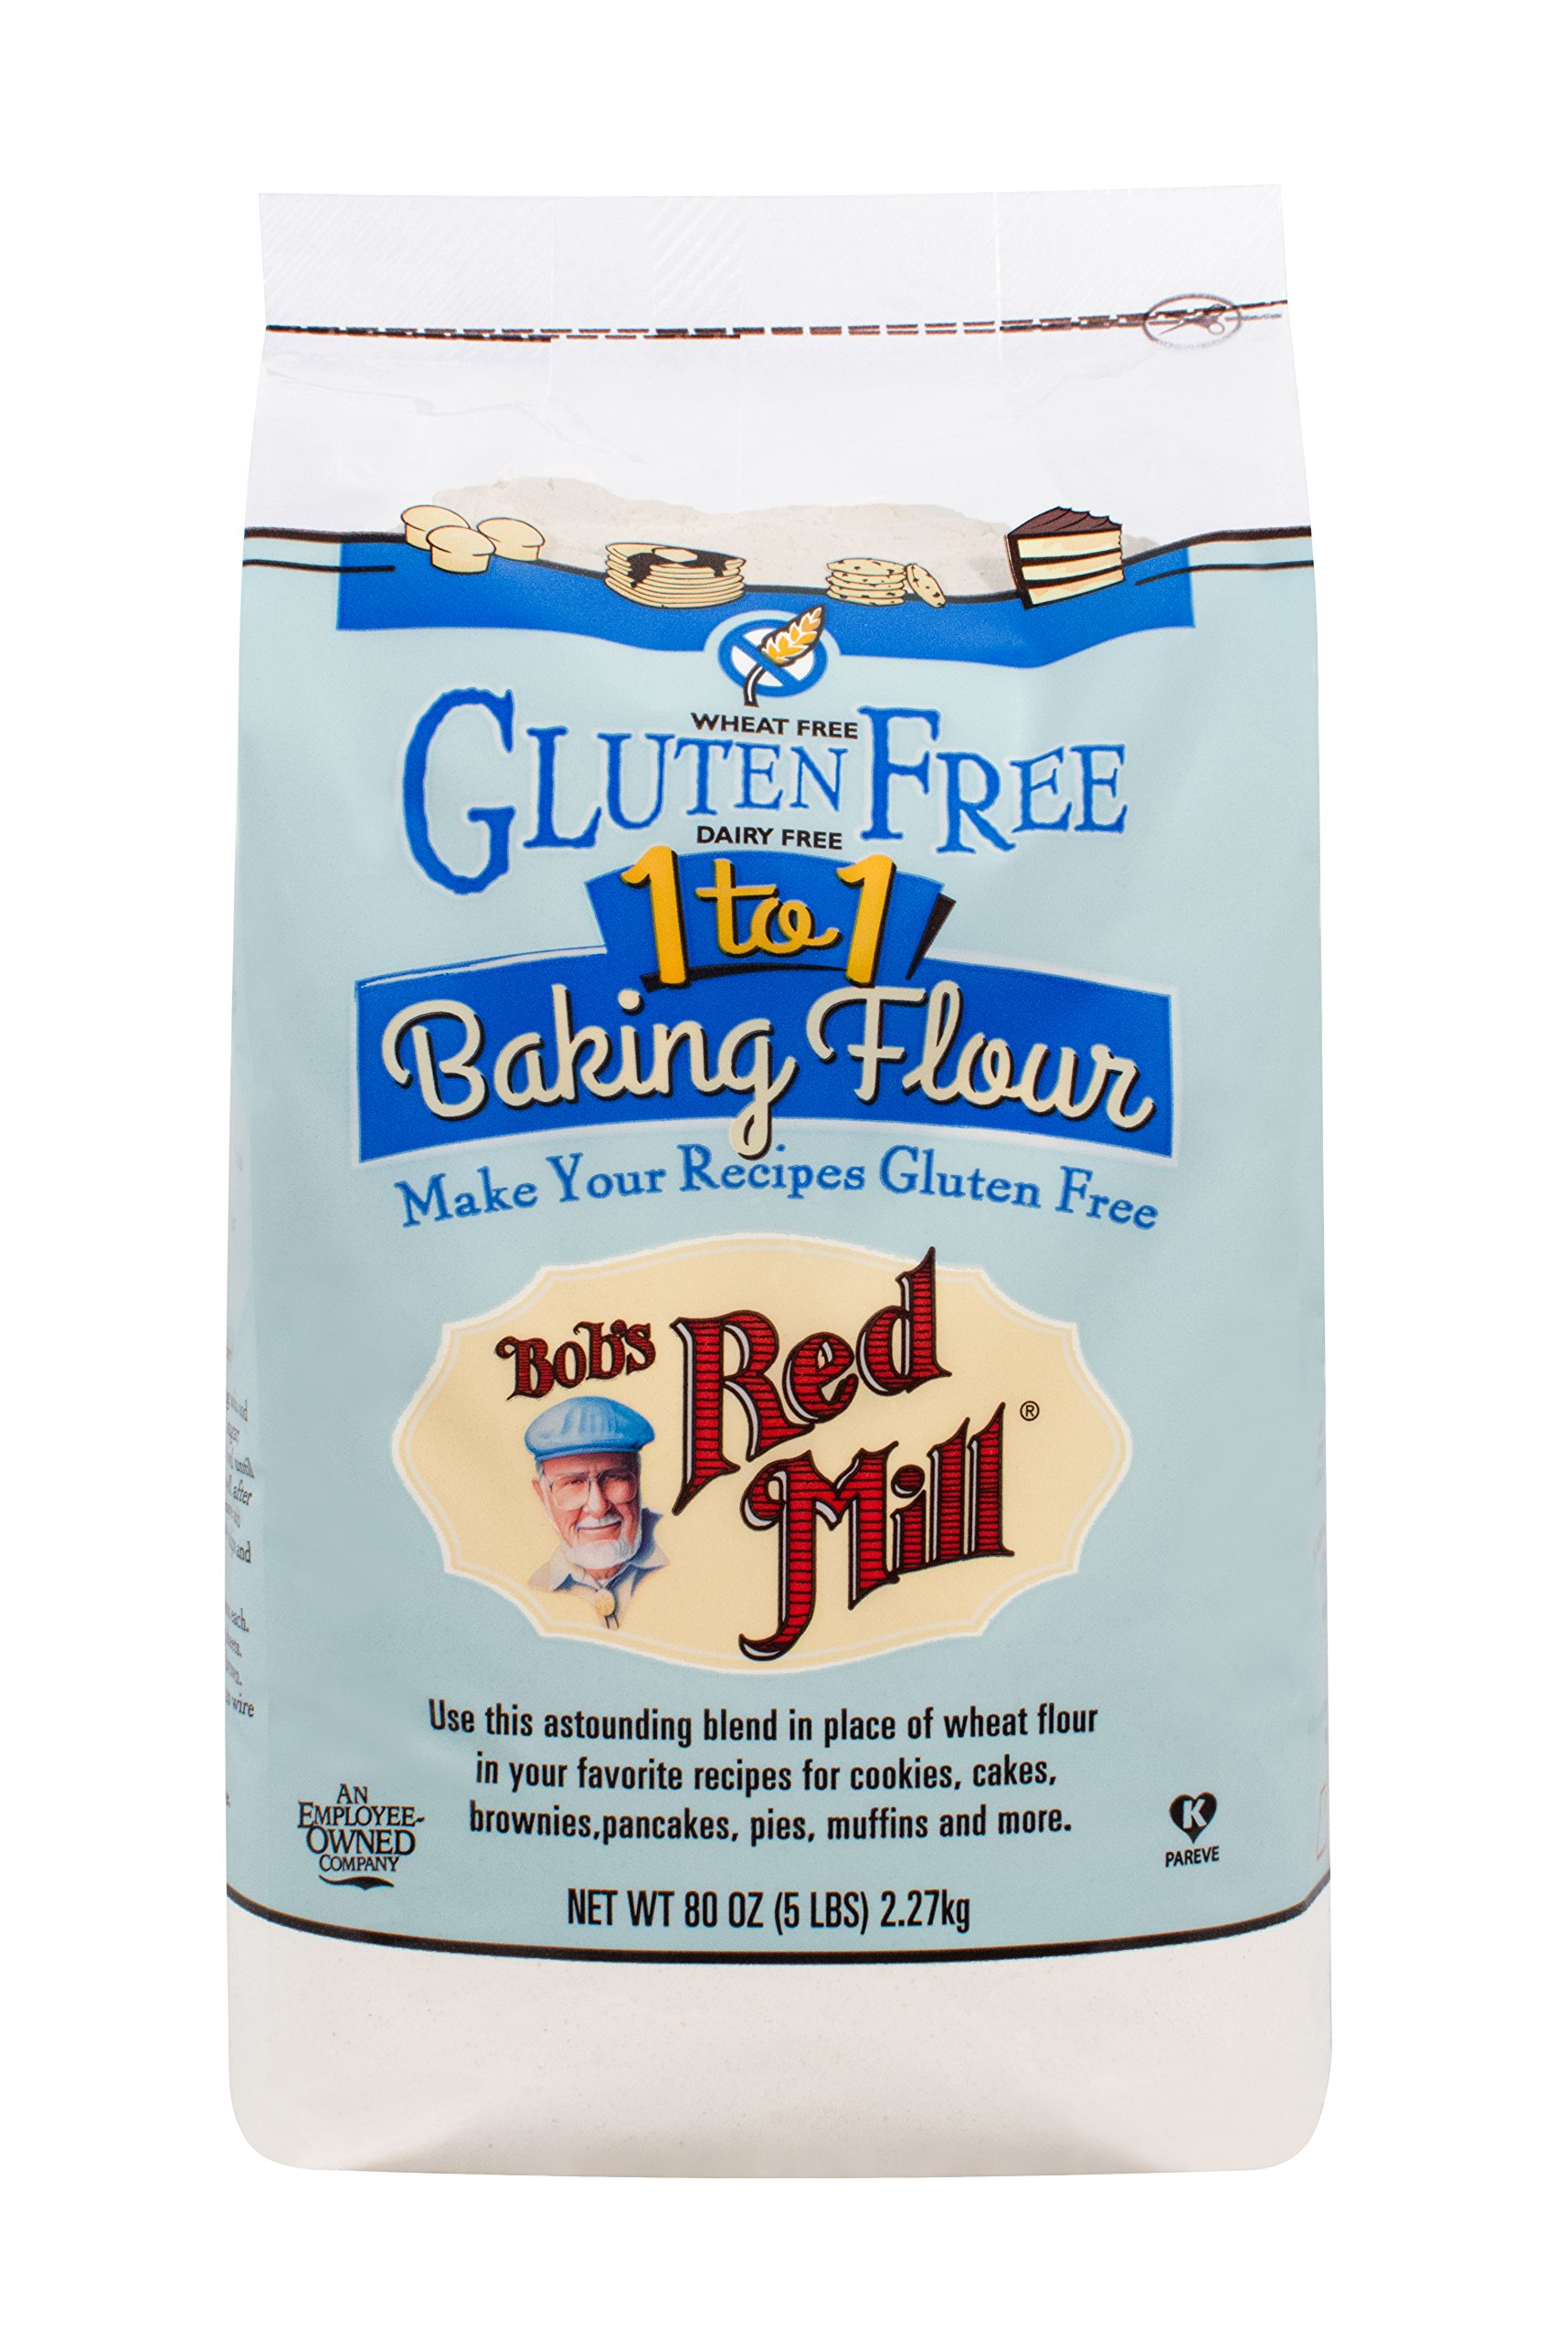 Bob's Red Mill Gluten Free 1-to-1 Baking Flour, 5 Pound by Bob's Red Mill (Image #1)